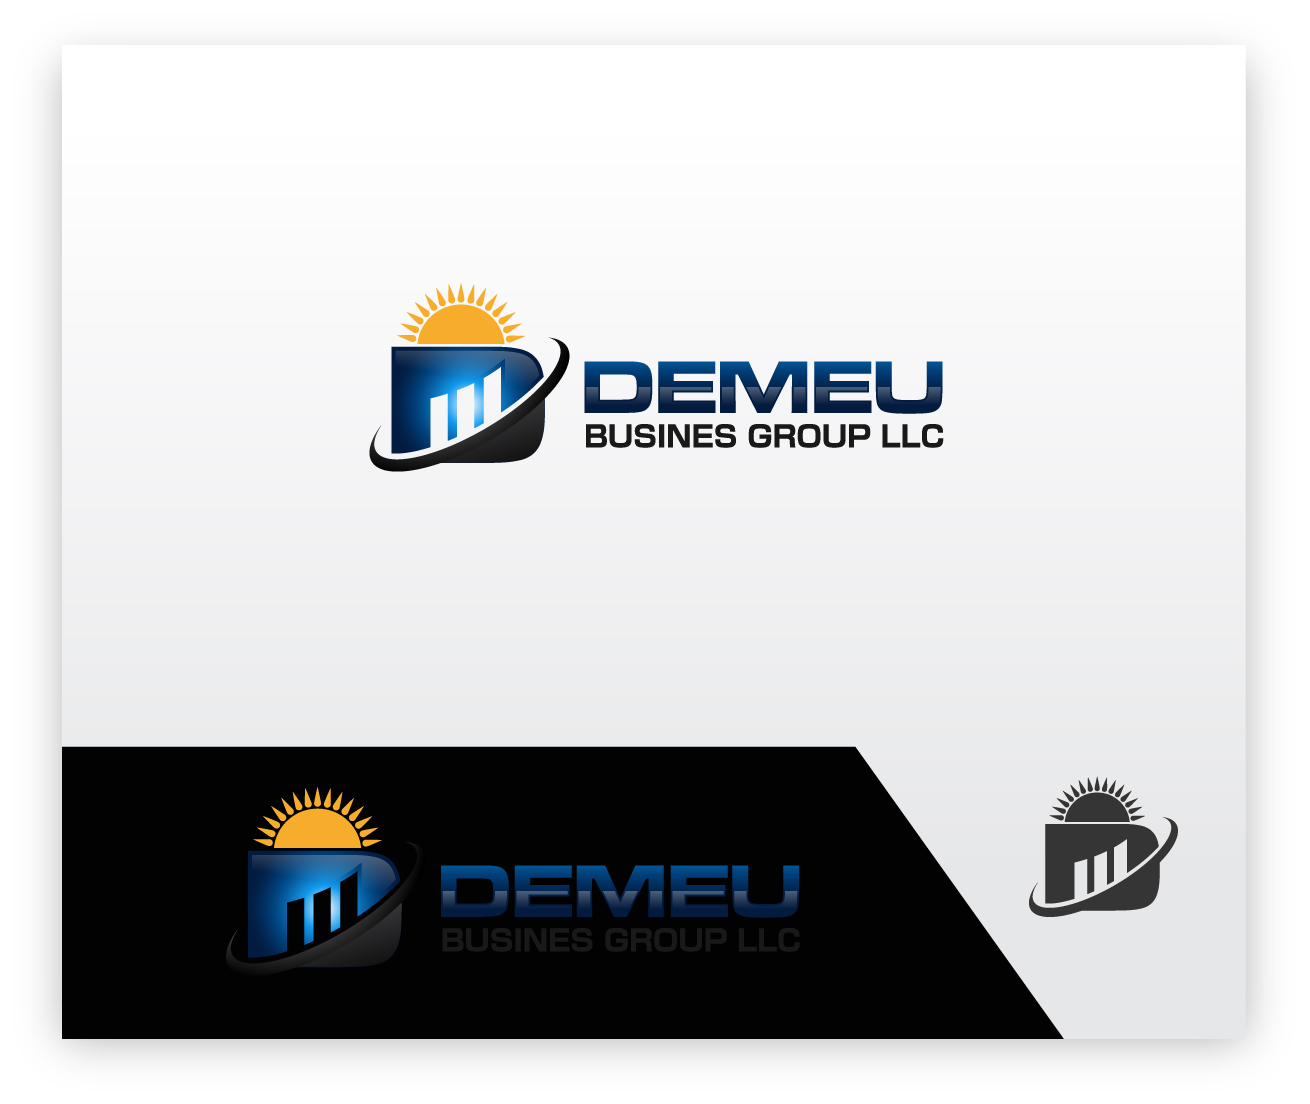 Logo Design by zoiDesign - Entry No. 113 in the Logo Design Contest Captivating Logo Design for DEMEU Business Group.